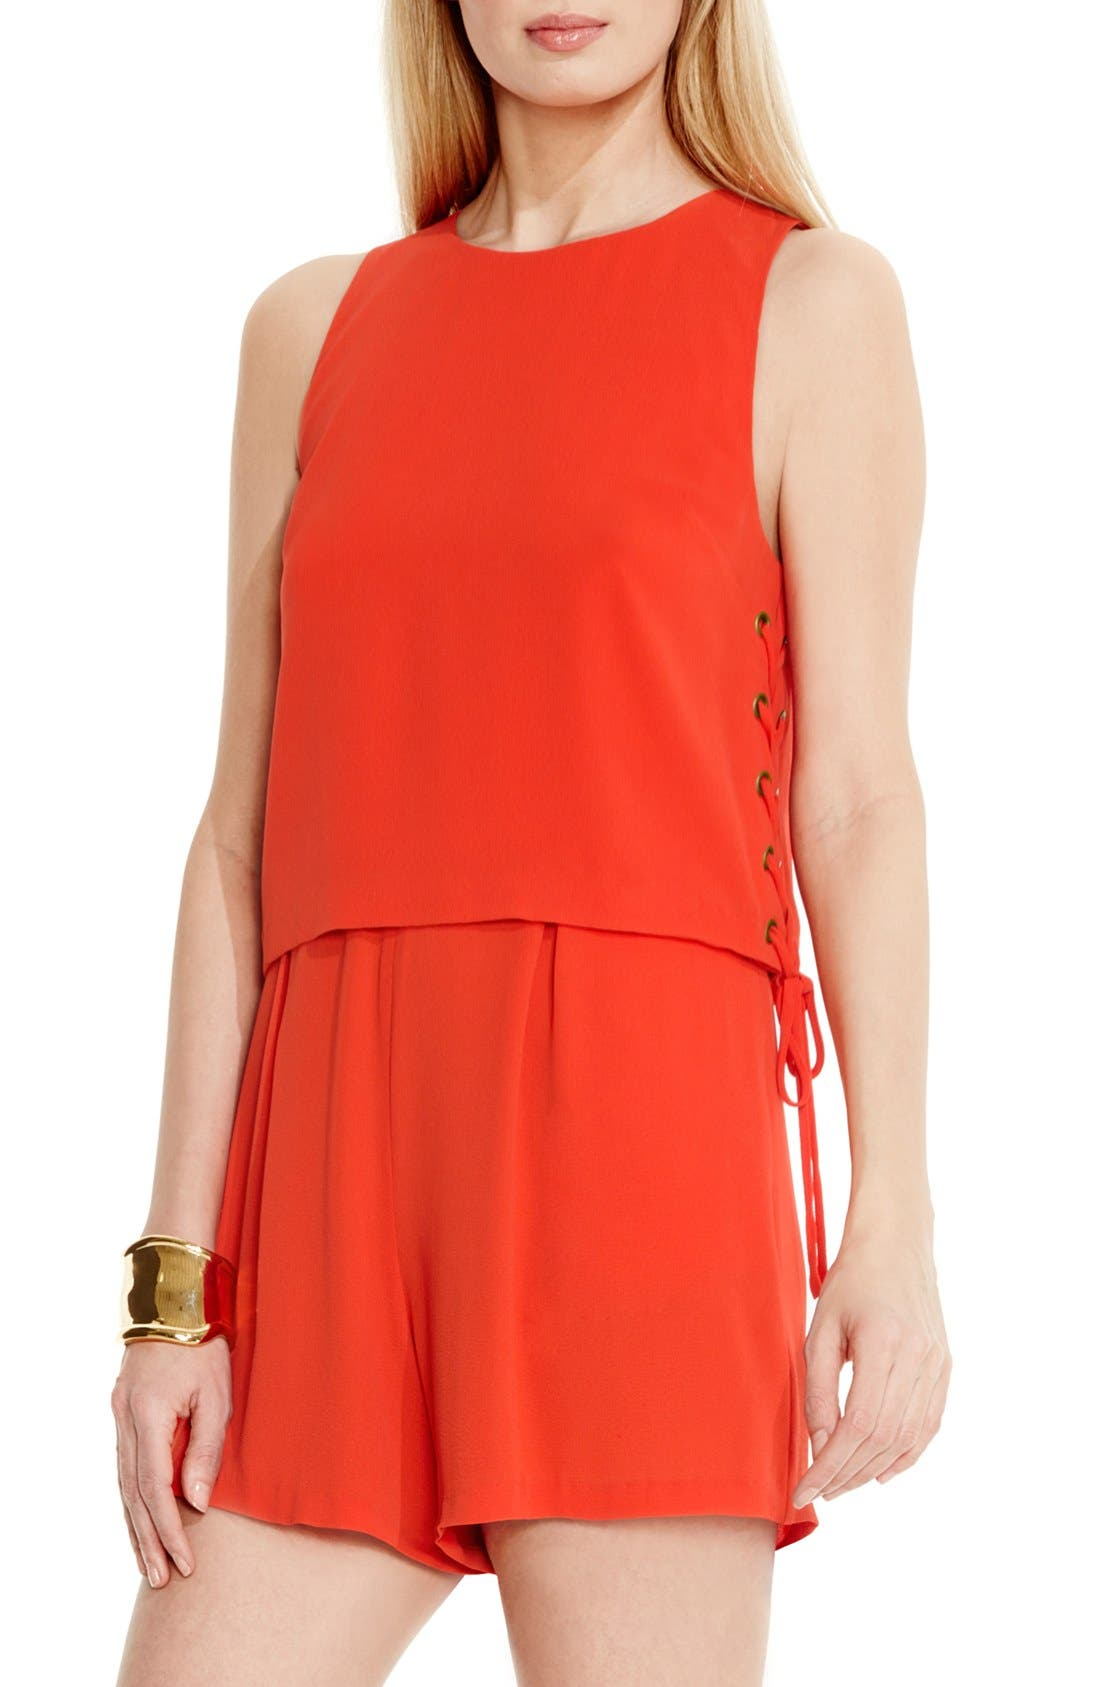 Main Image - Vince Camuto Lace-Up Detail Sleeveless Romper